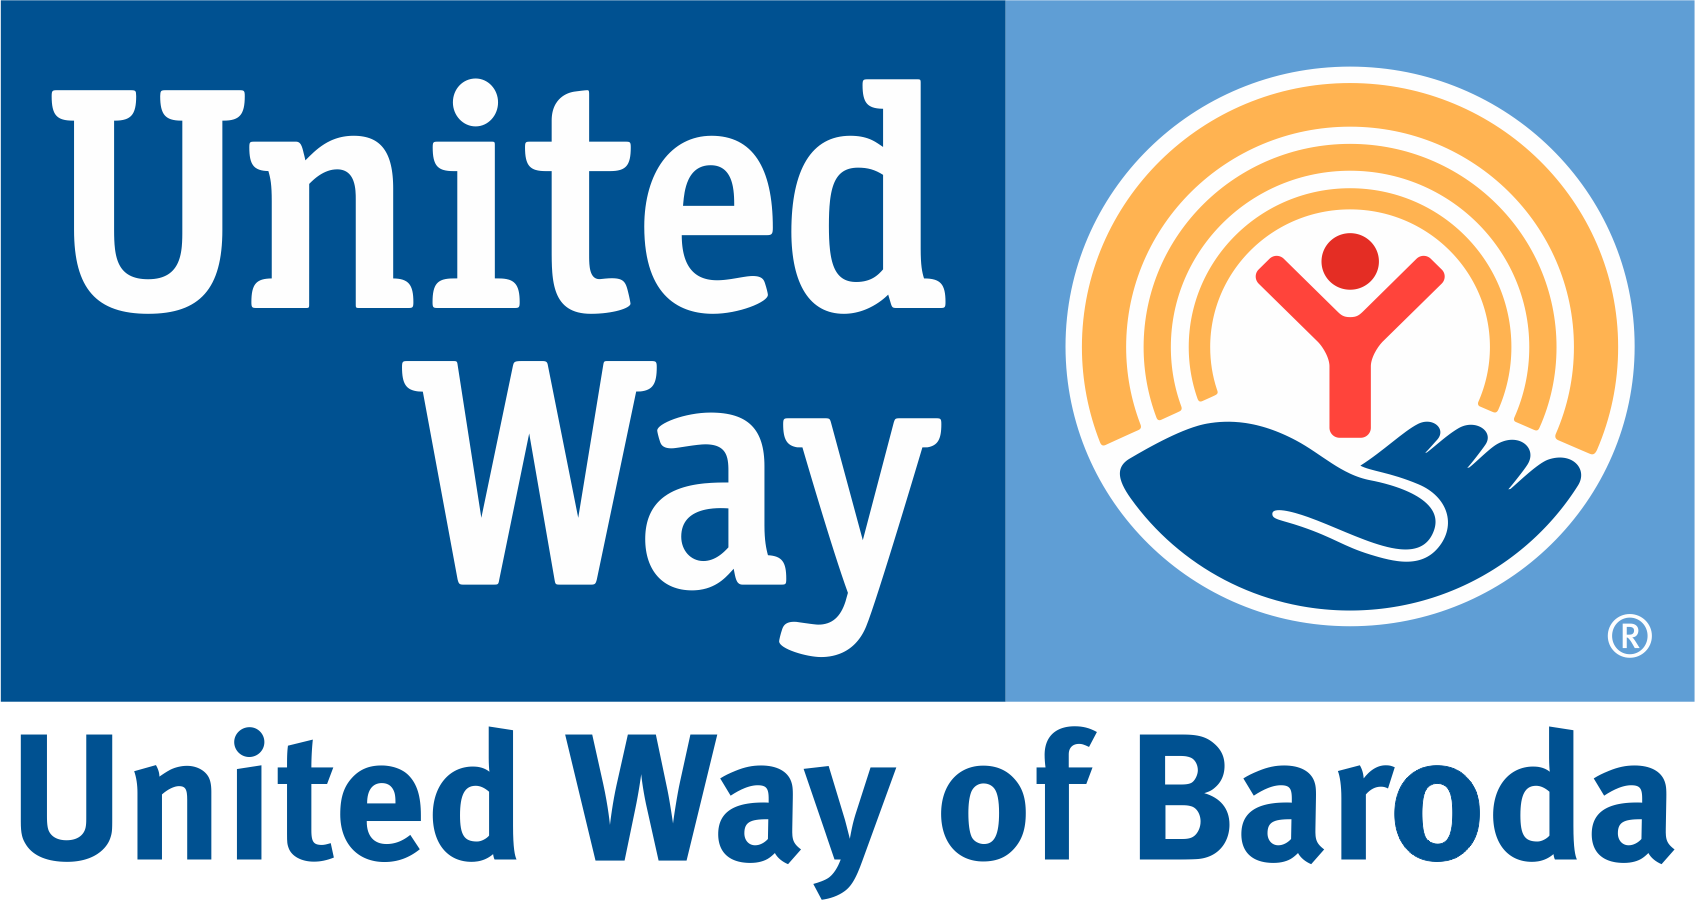 United Way of Baroda